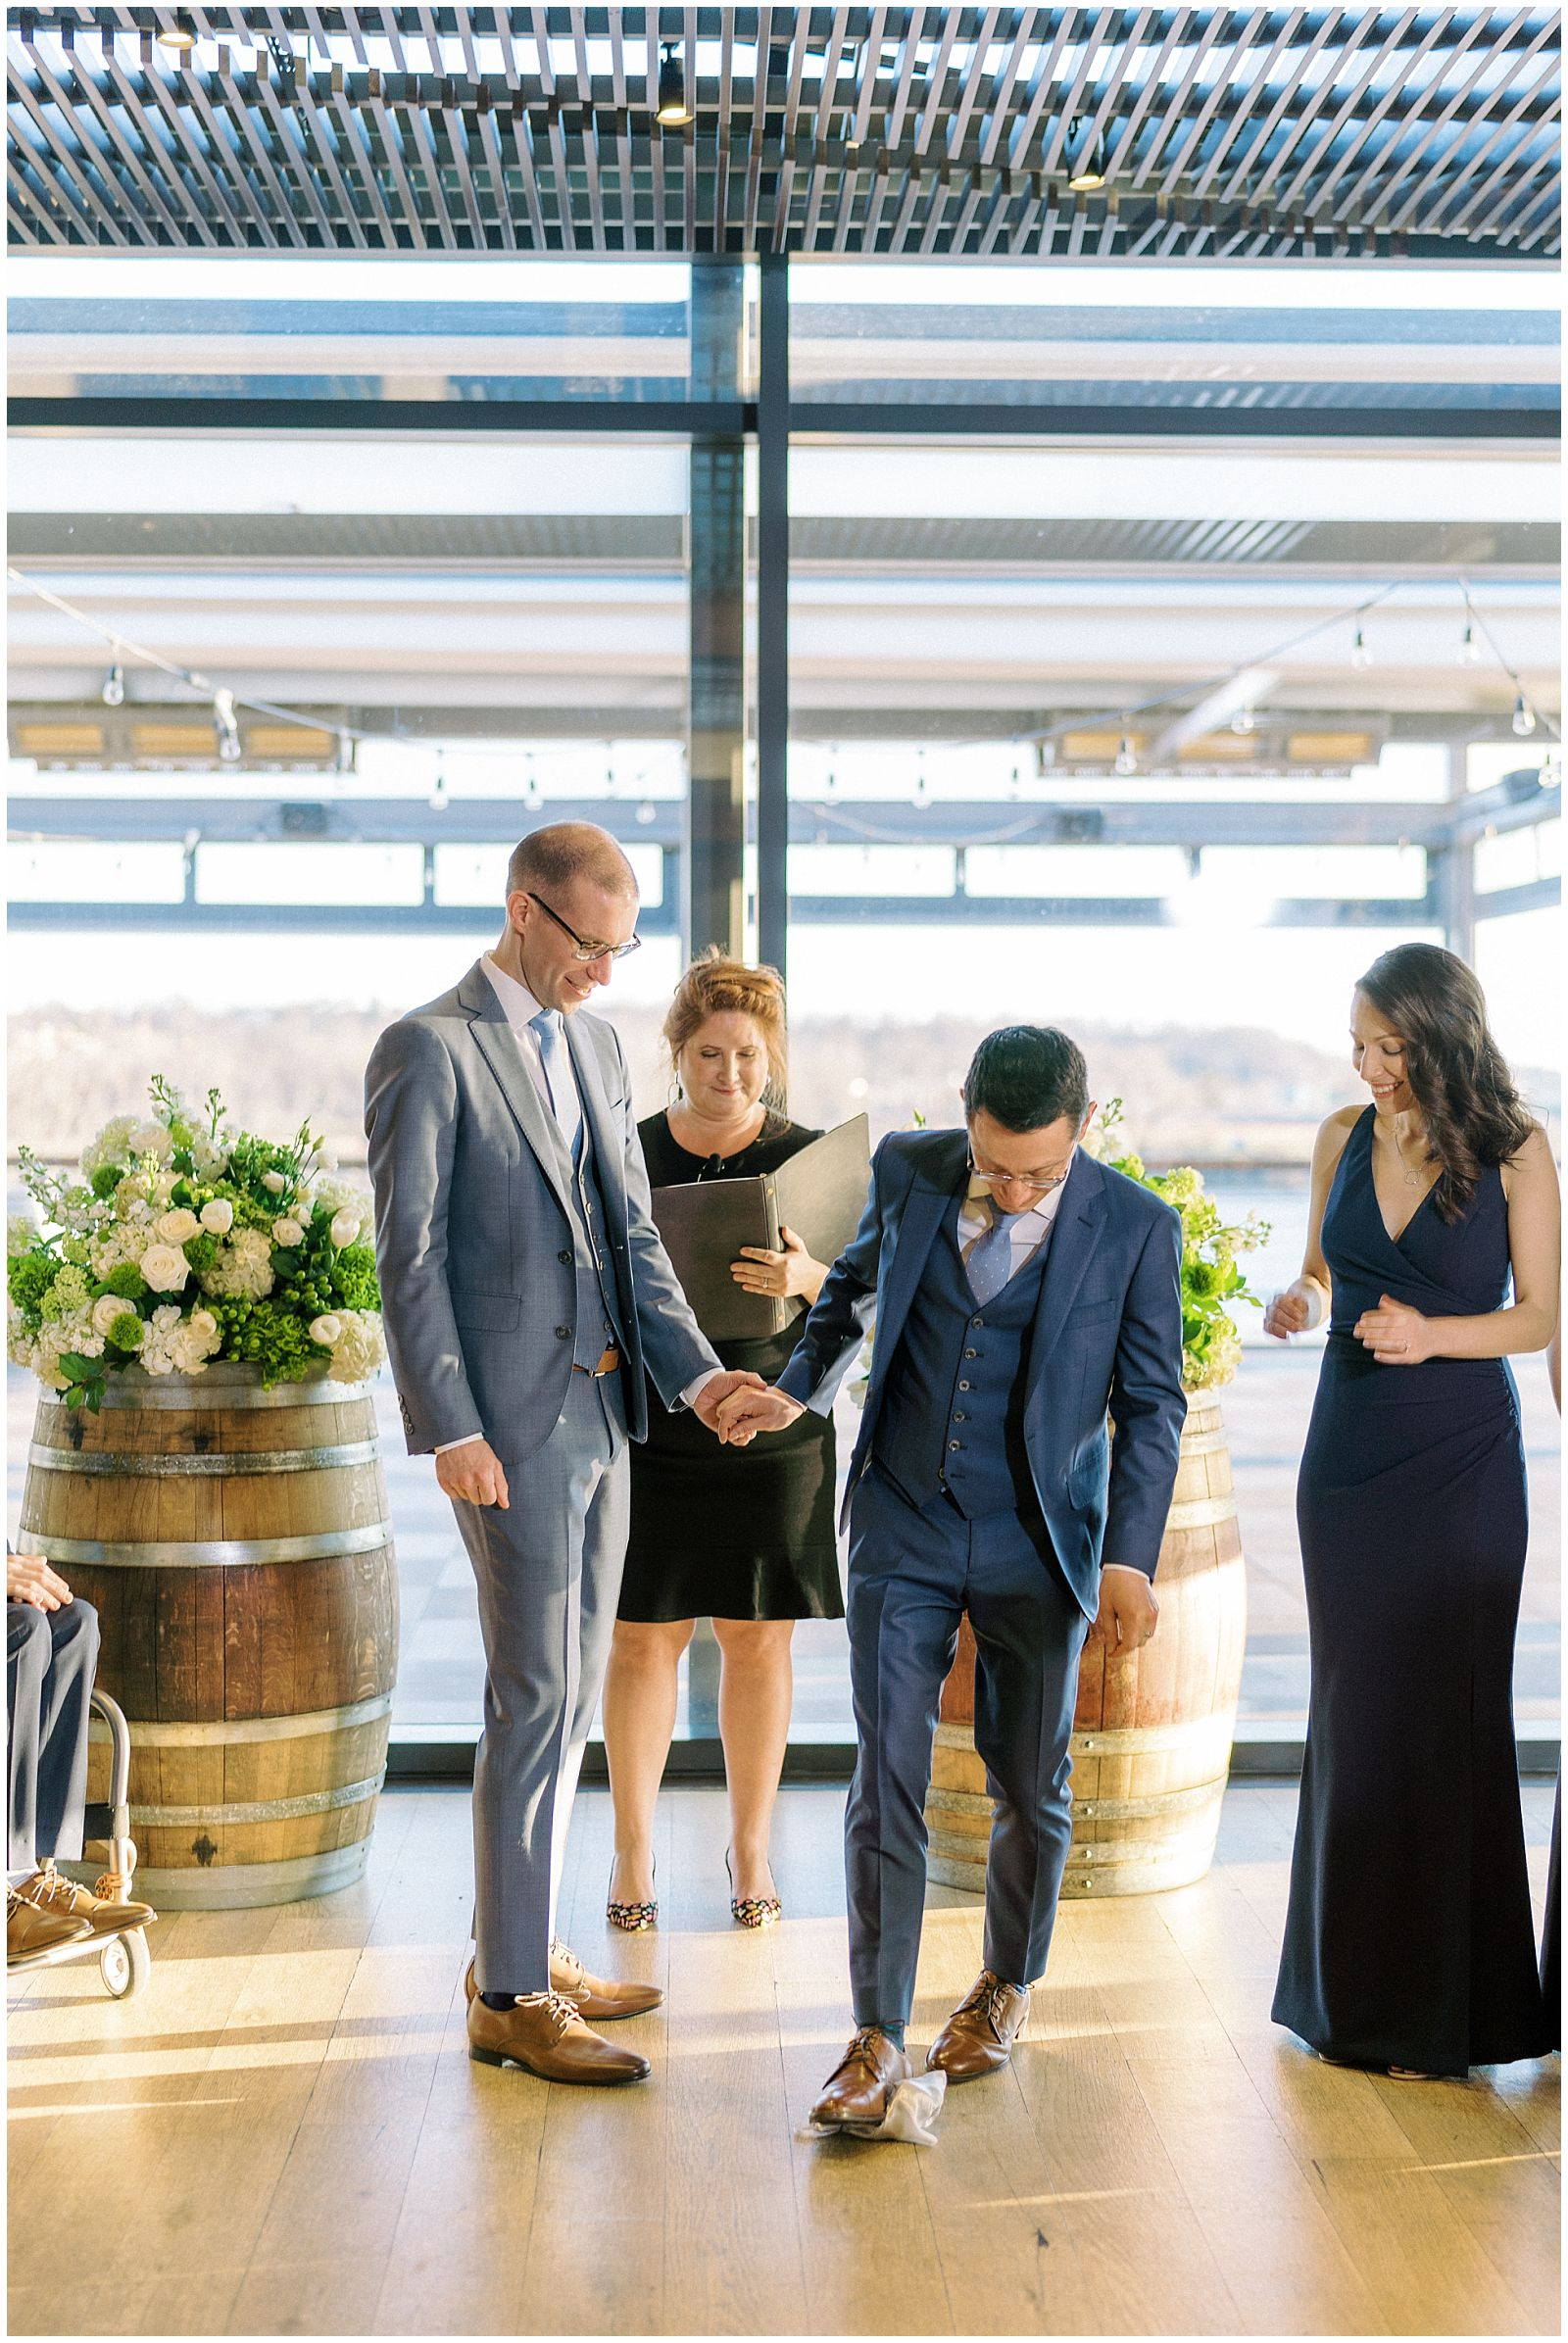 Indoor wedding ceremony at District Winery